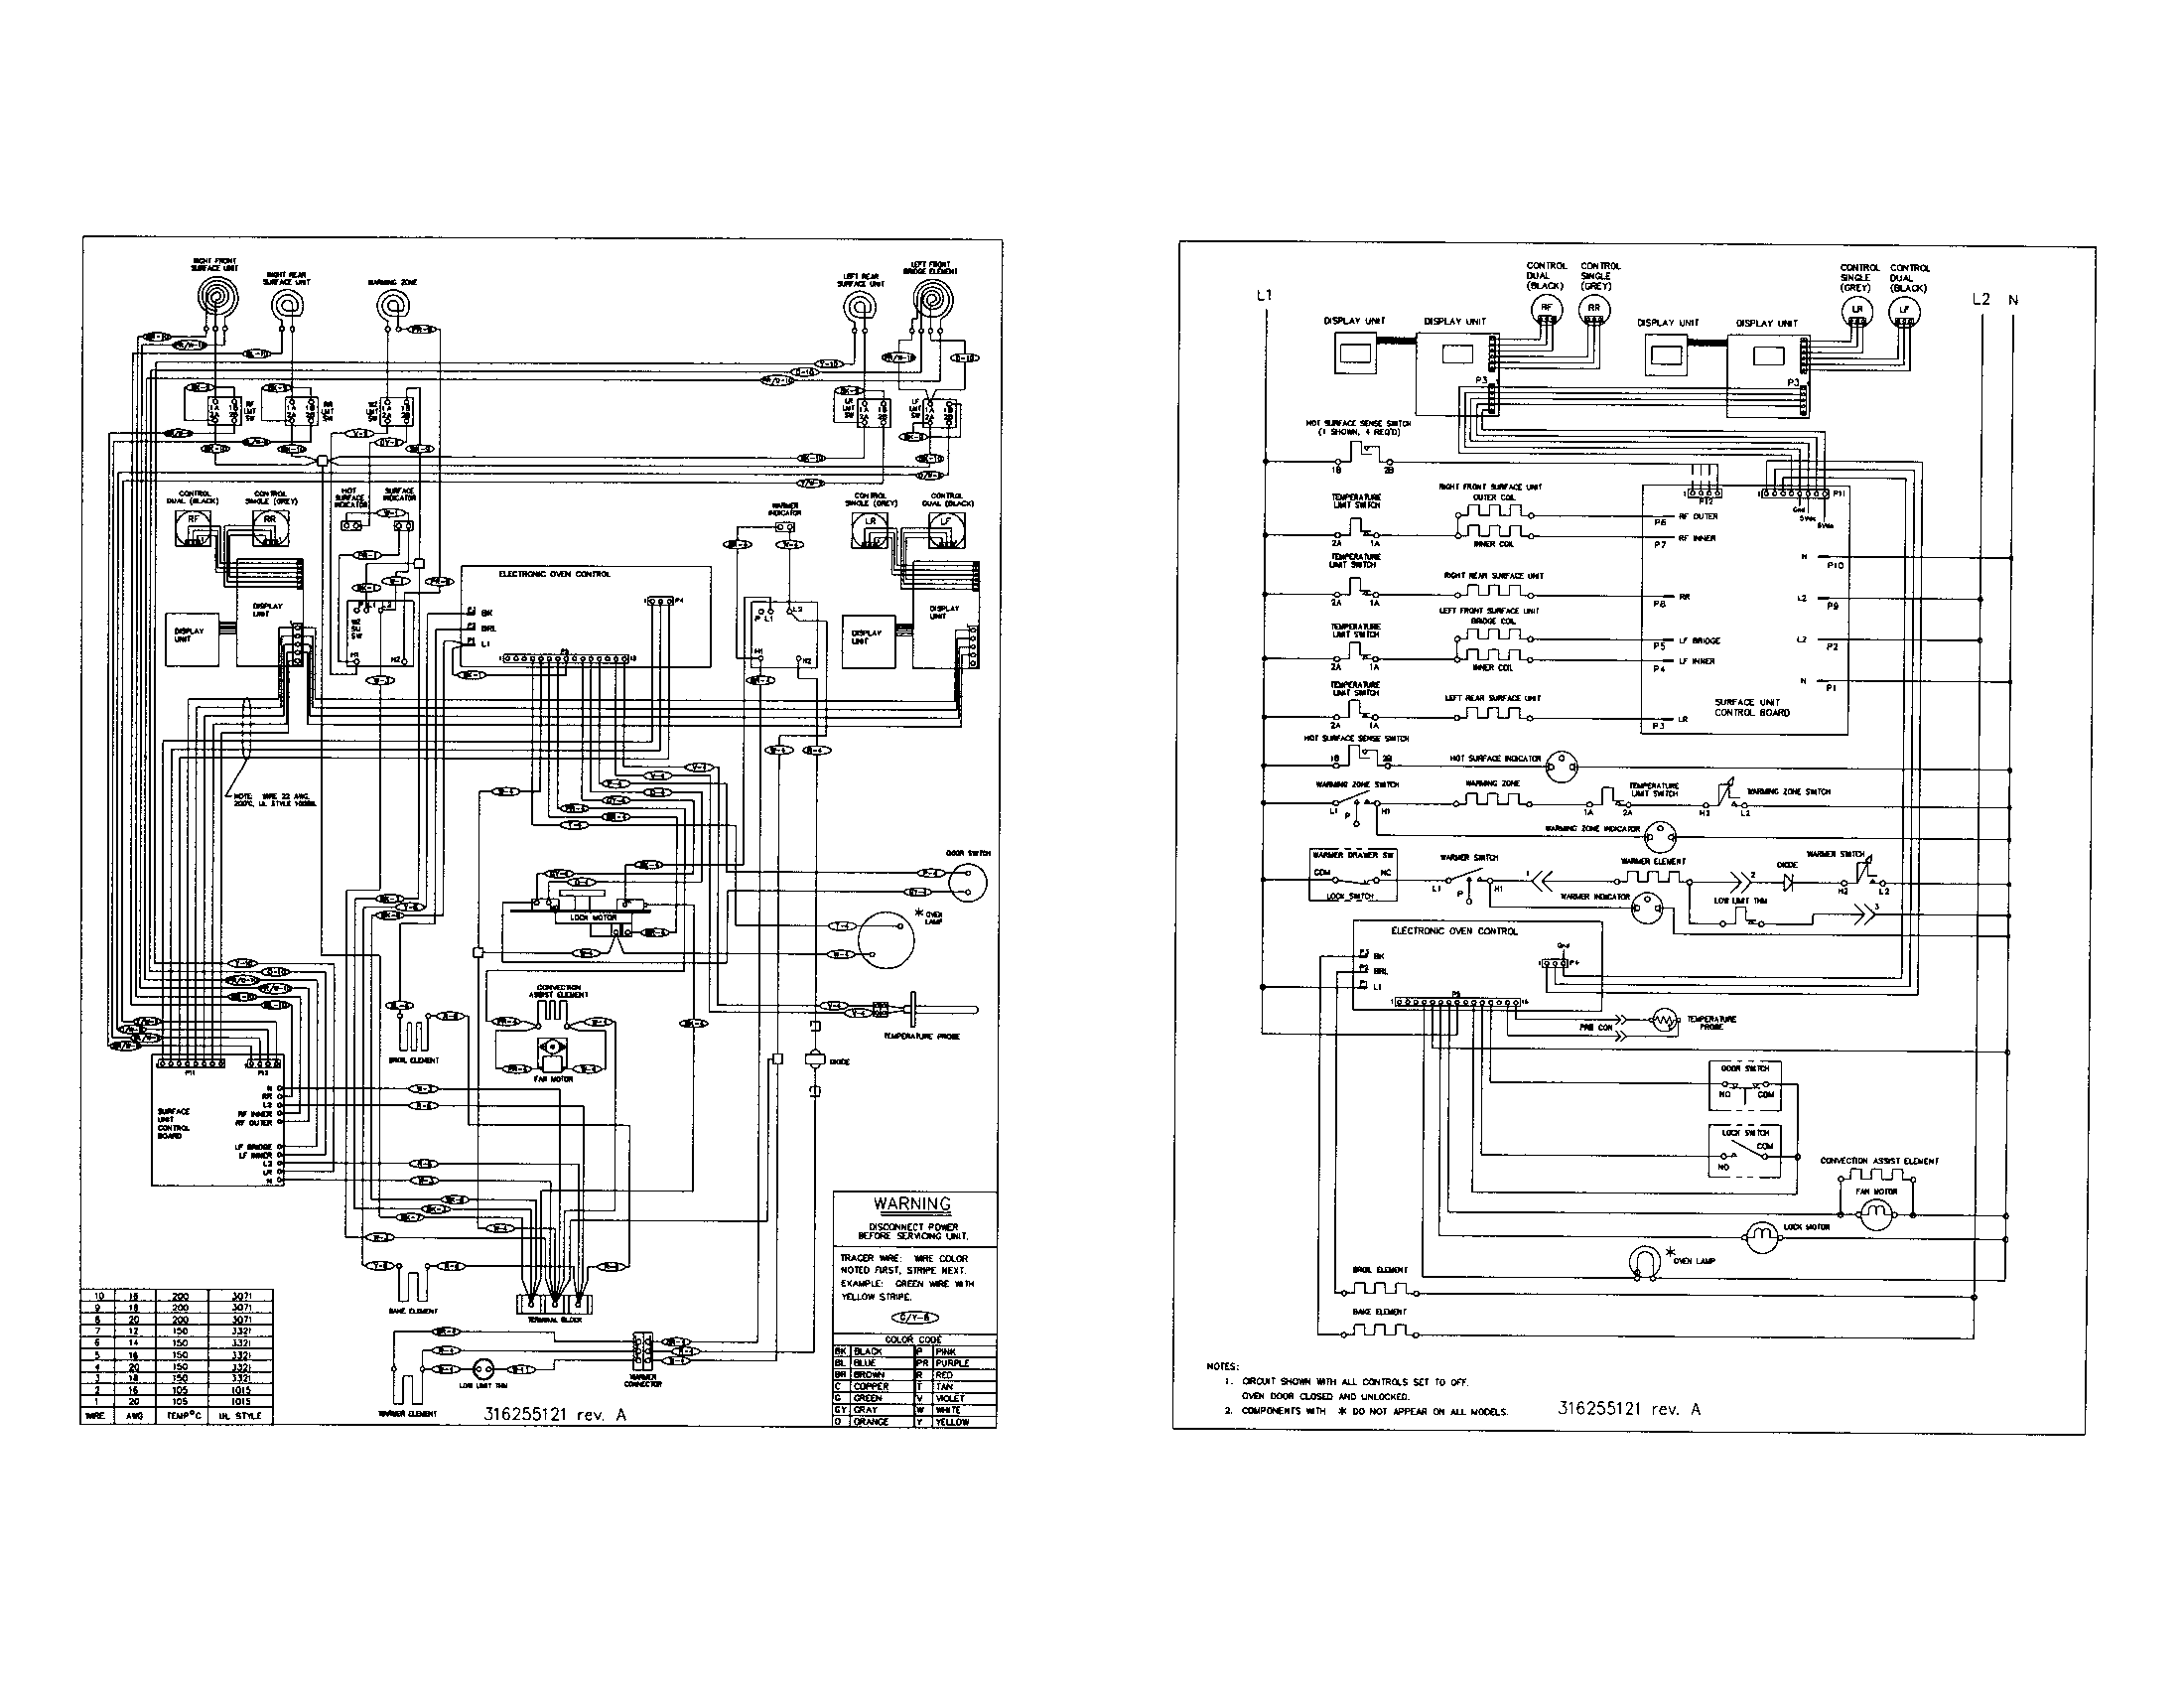 wiring diagram parts frigidaire refrigerator wiring diagram frigidaire wiring  at eliteediting.co